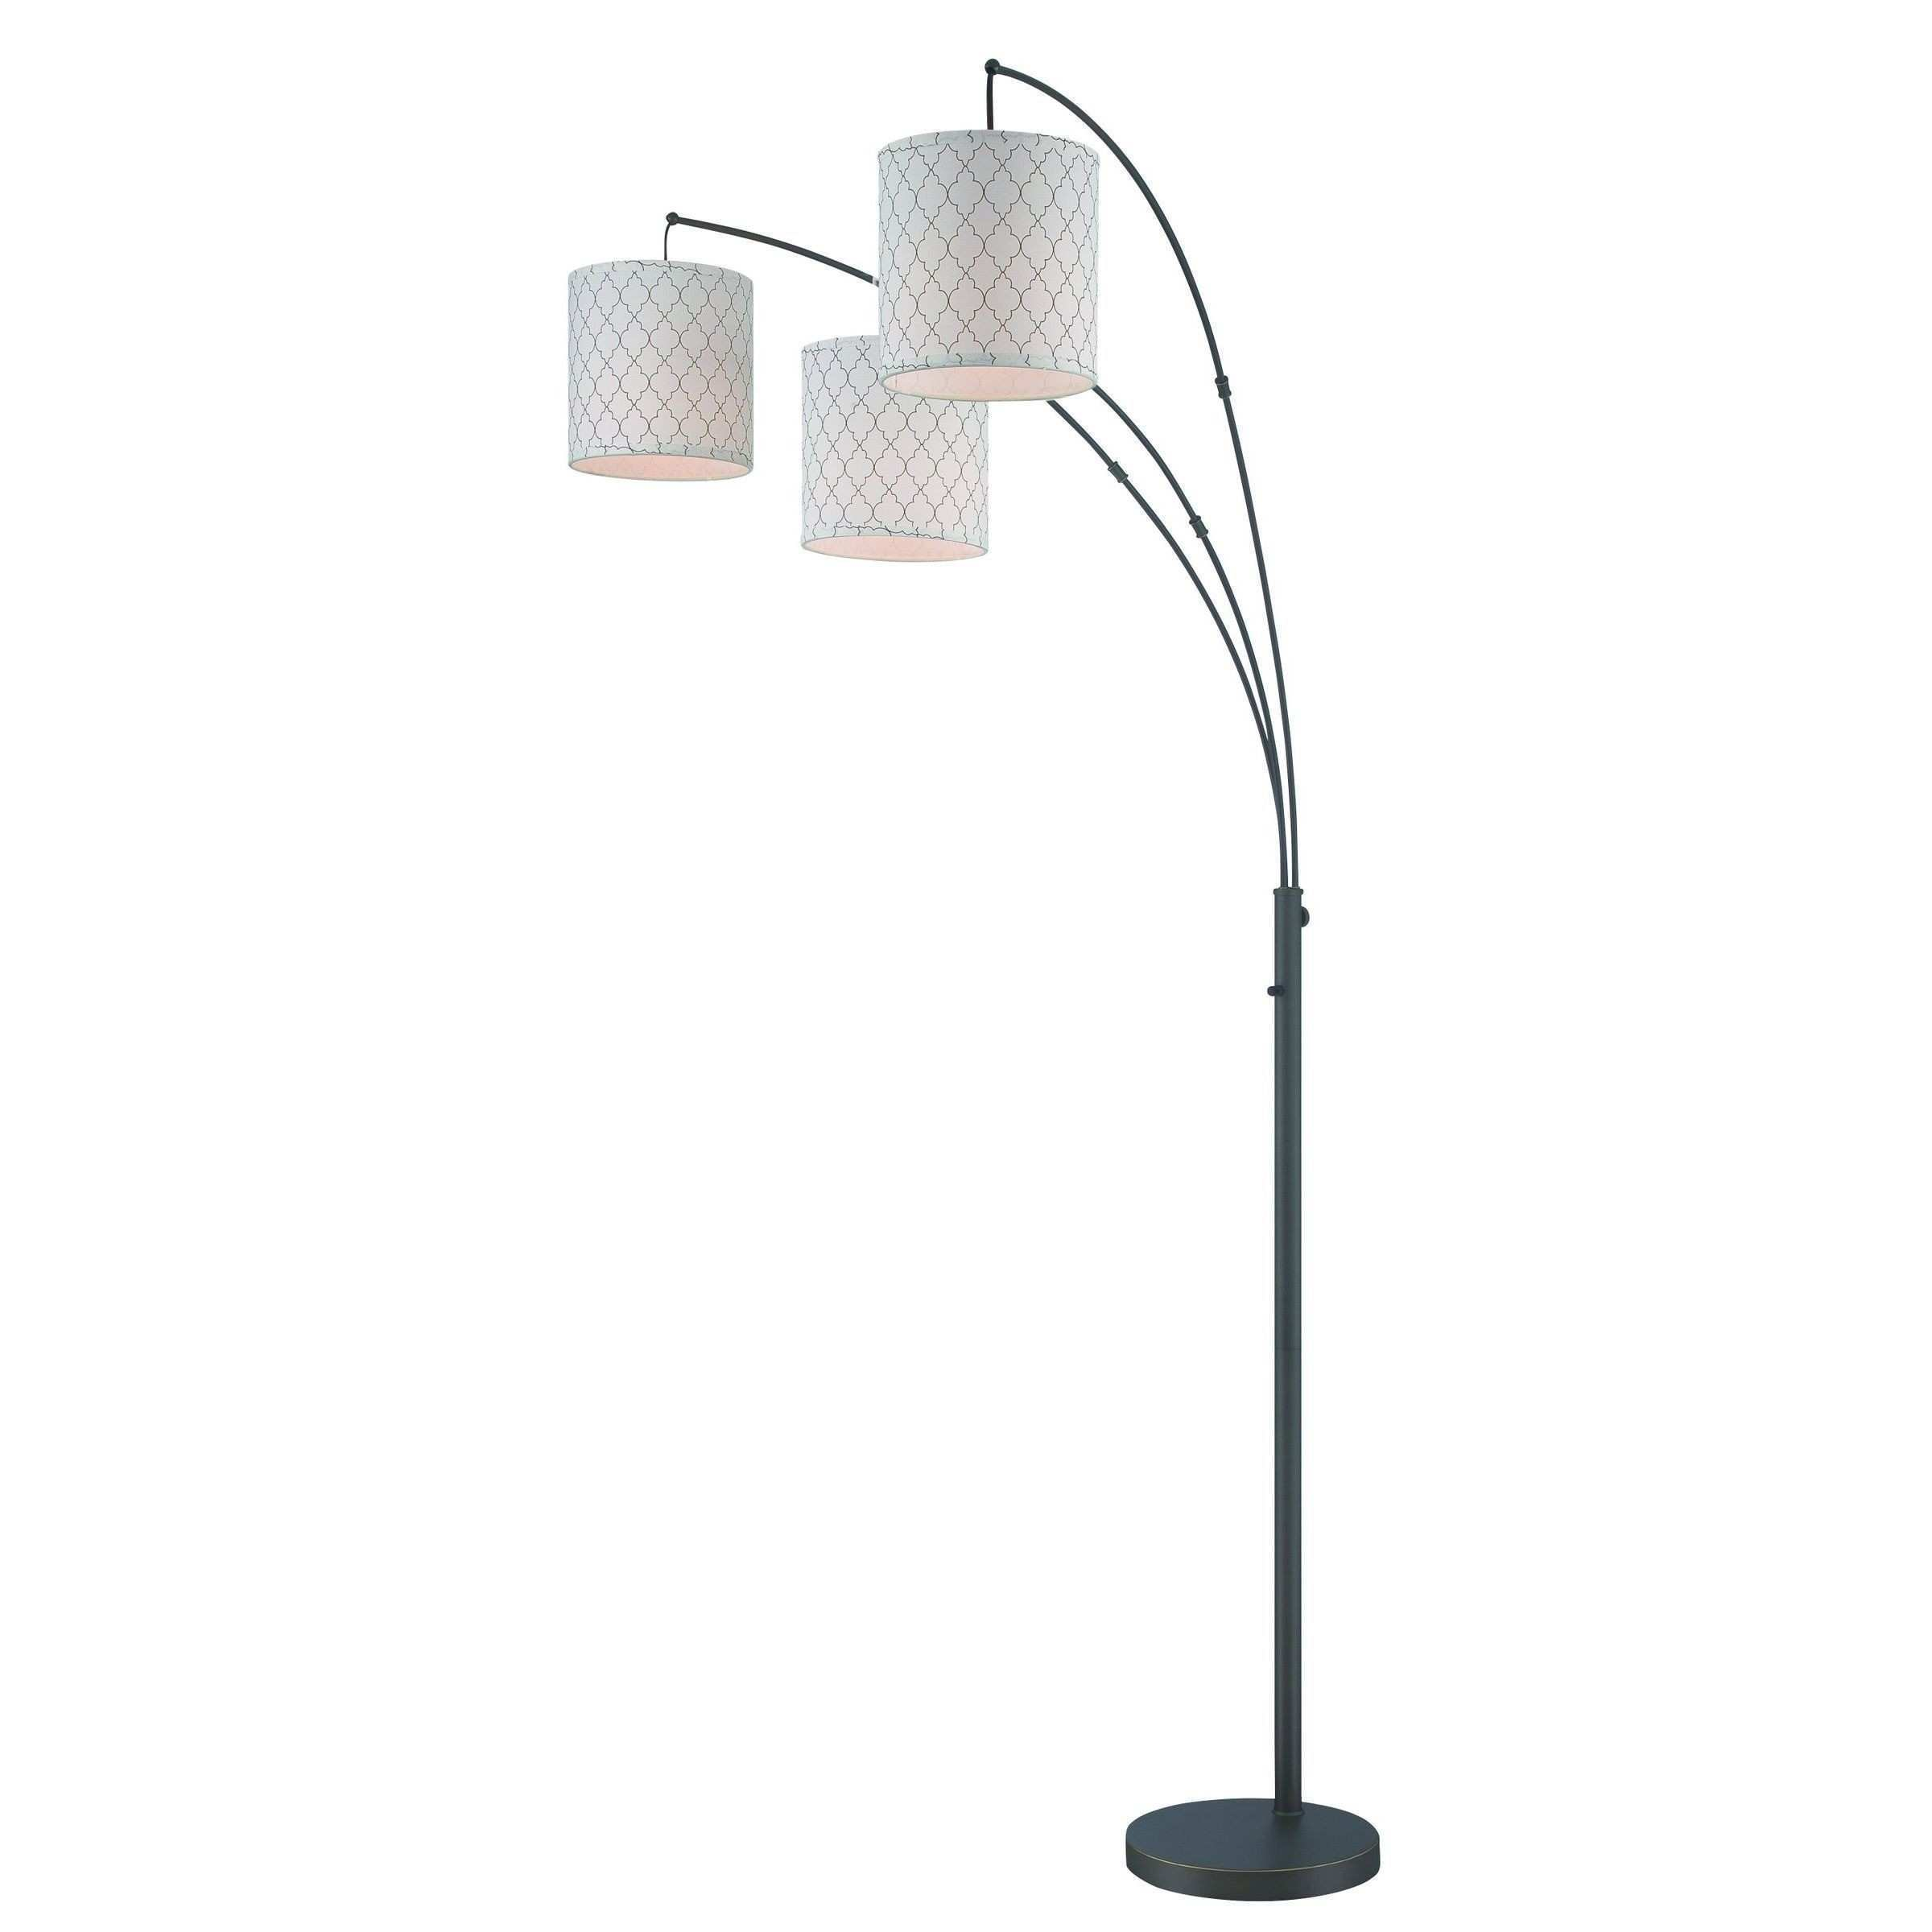 Black and White Floor Lamp Elegant Car Table Lamp Inspirational Used